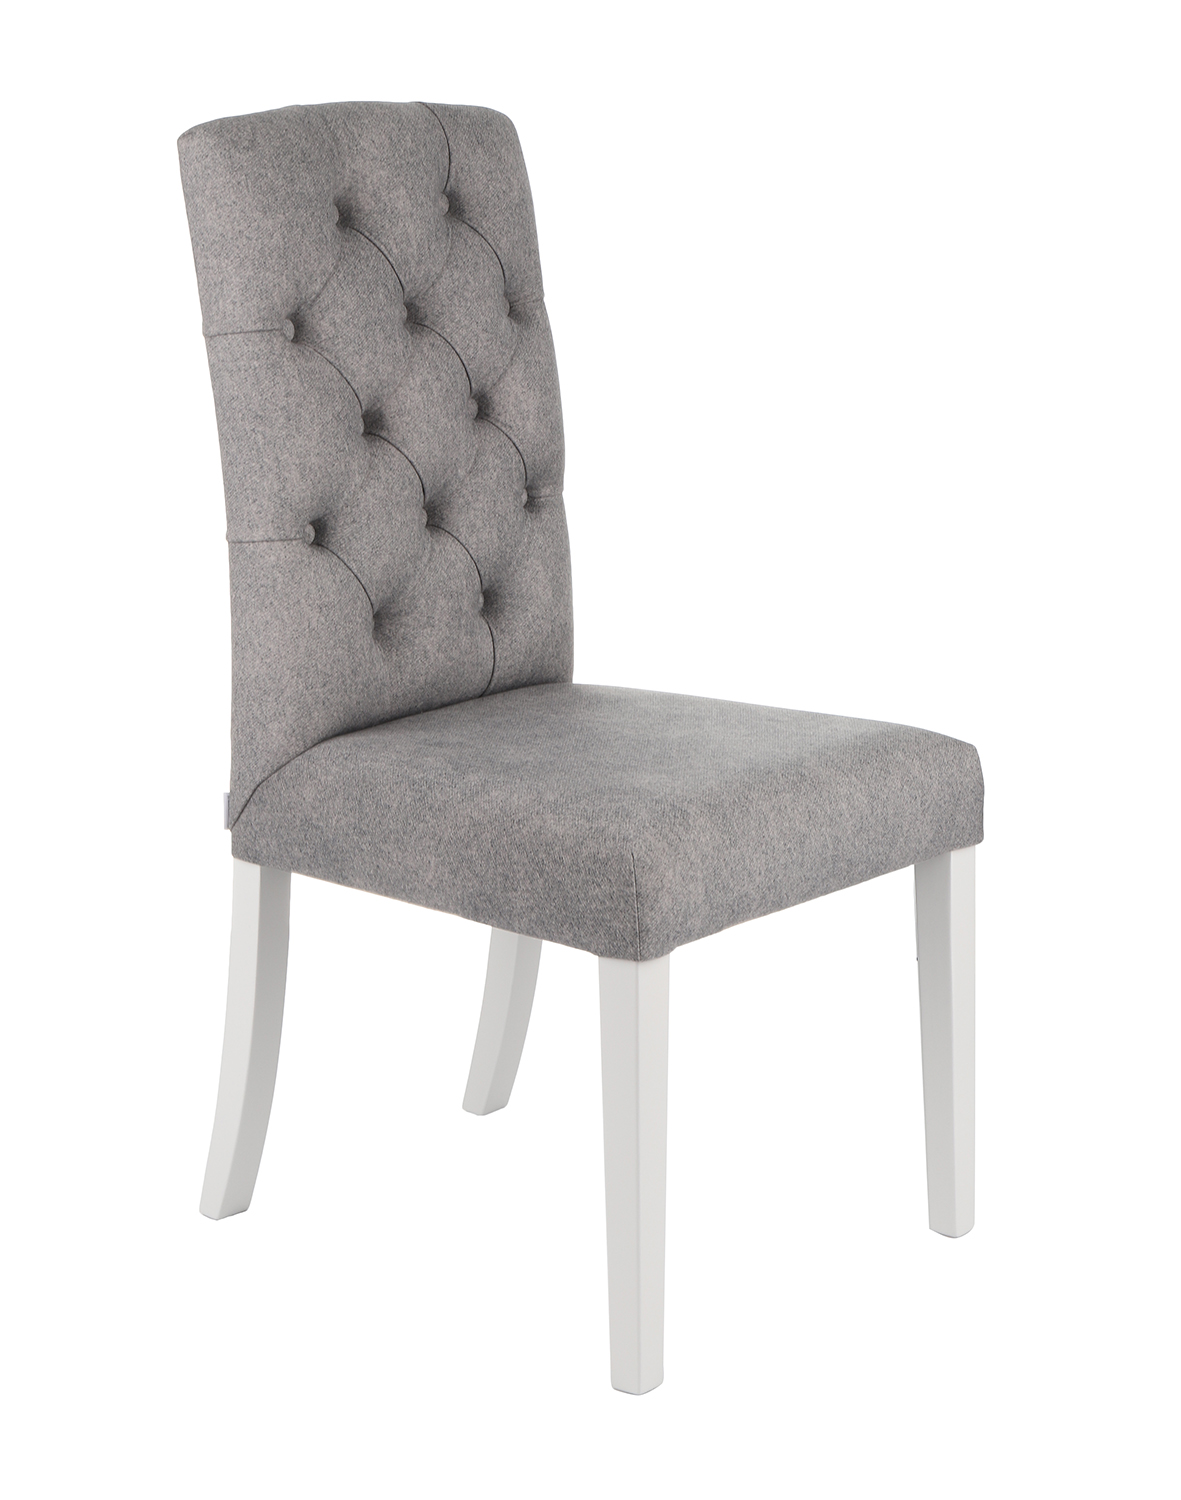 ASTORIA CHESTERFIELD STRONG 14 - OUTLET